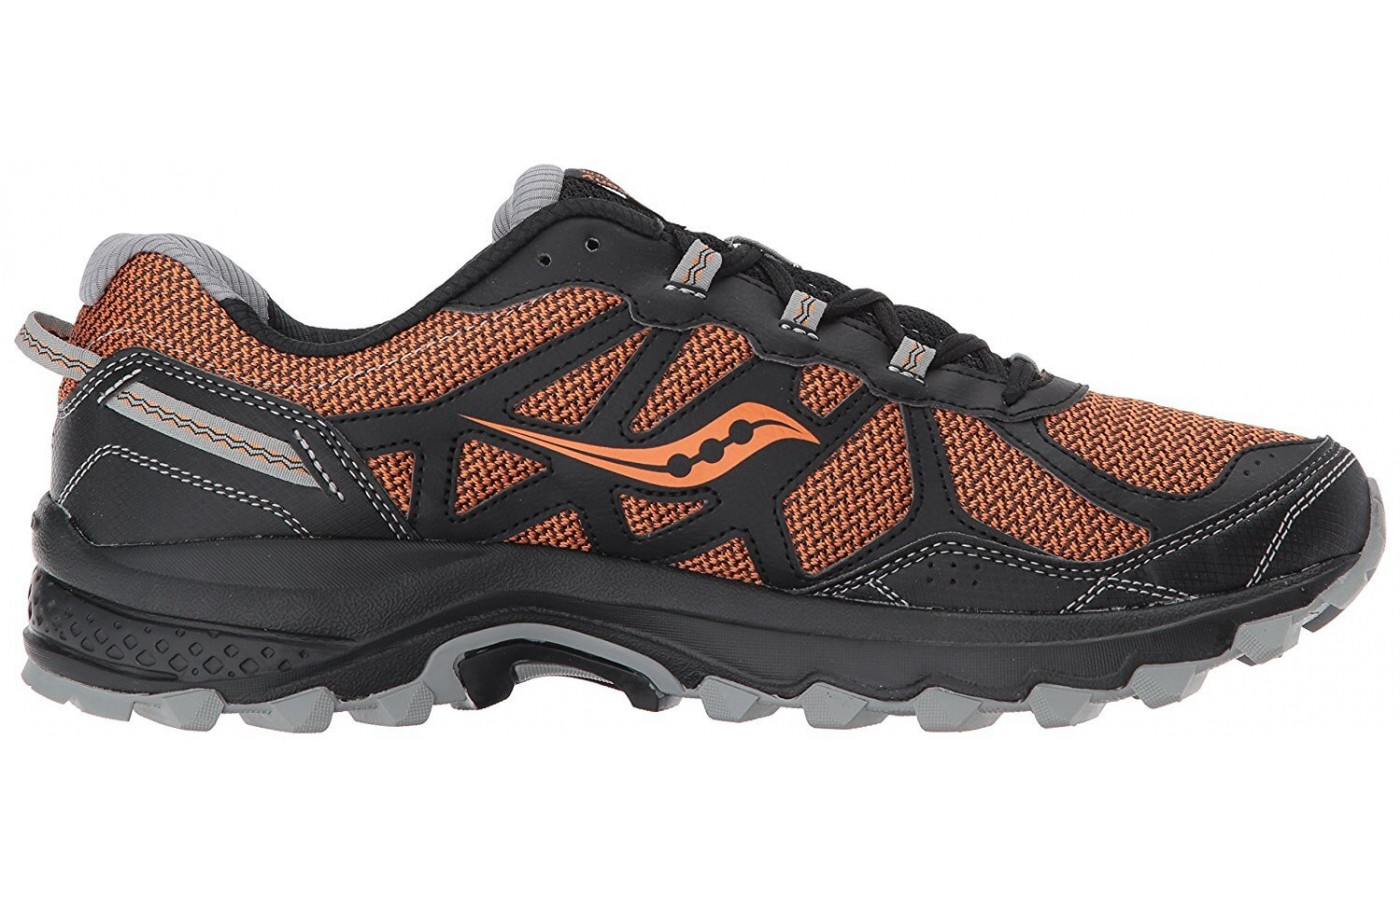 The Saucony Excursion TR11 features IMEVA midsole cushioning